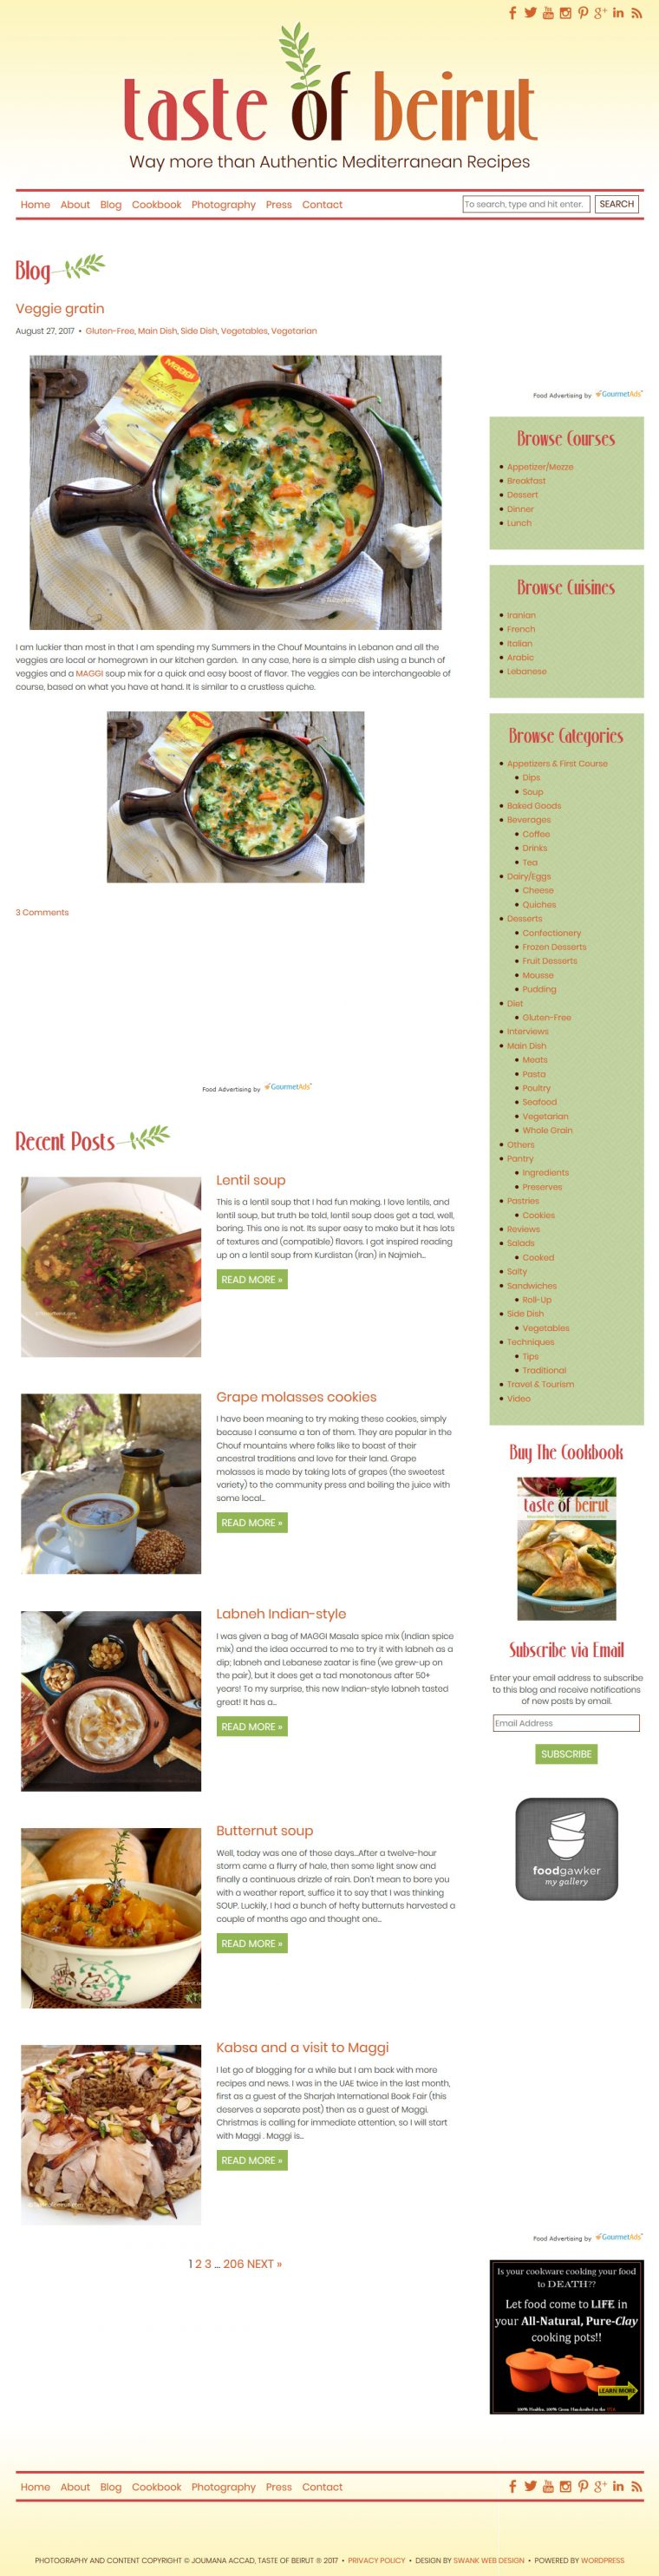 Website and Blog Design for Taste of Beirut by Swank Web Design